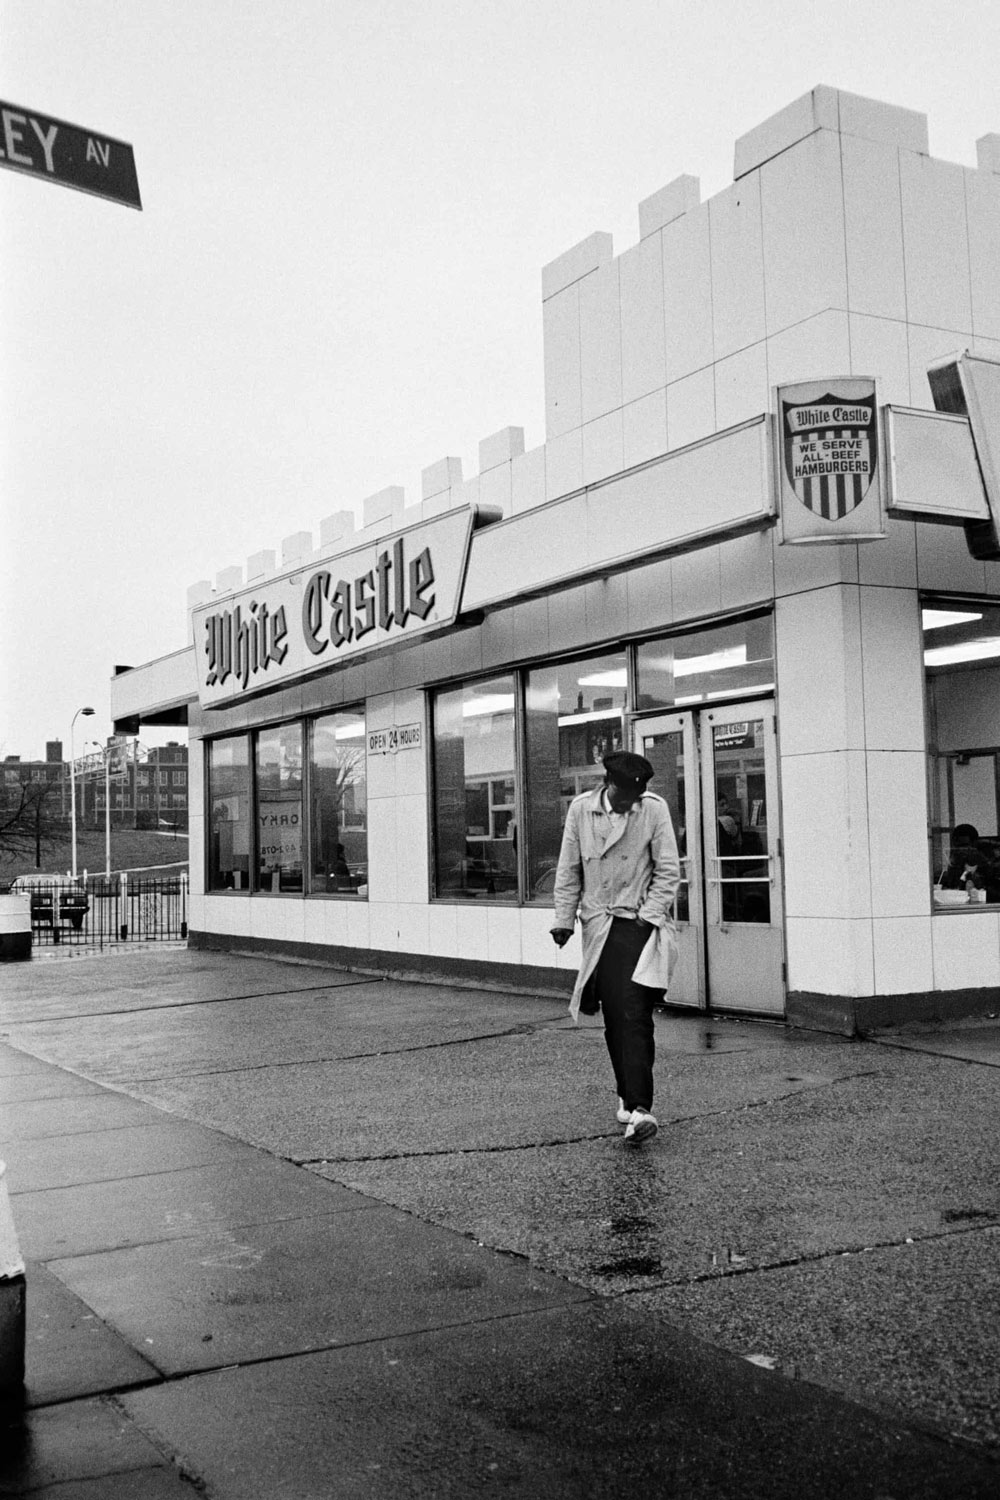 Fab 5 Freddy walking out of White Castle. Credit: © Sophie Bramly